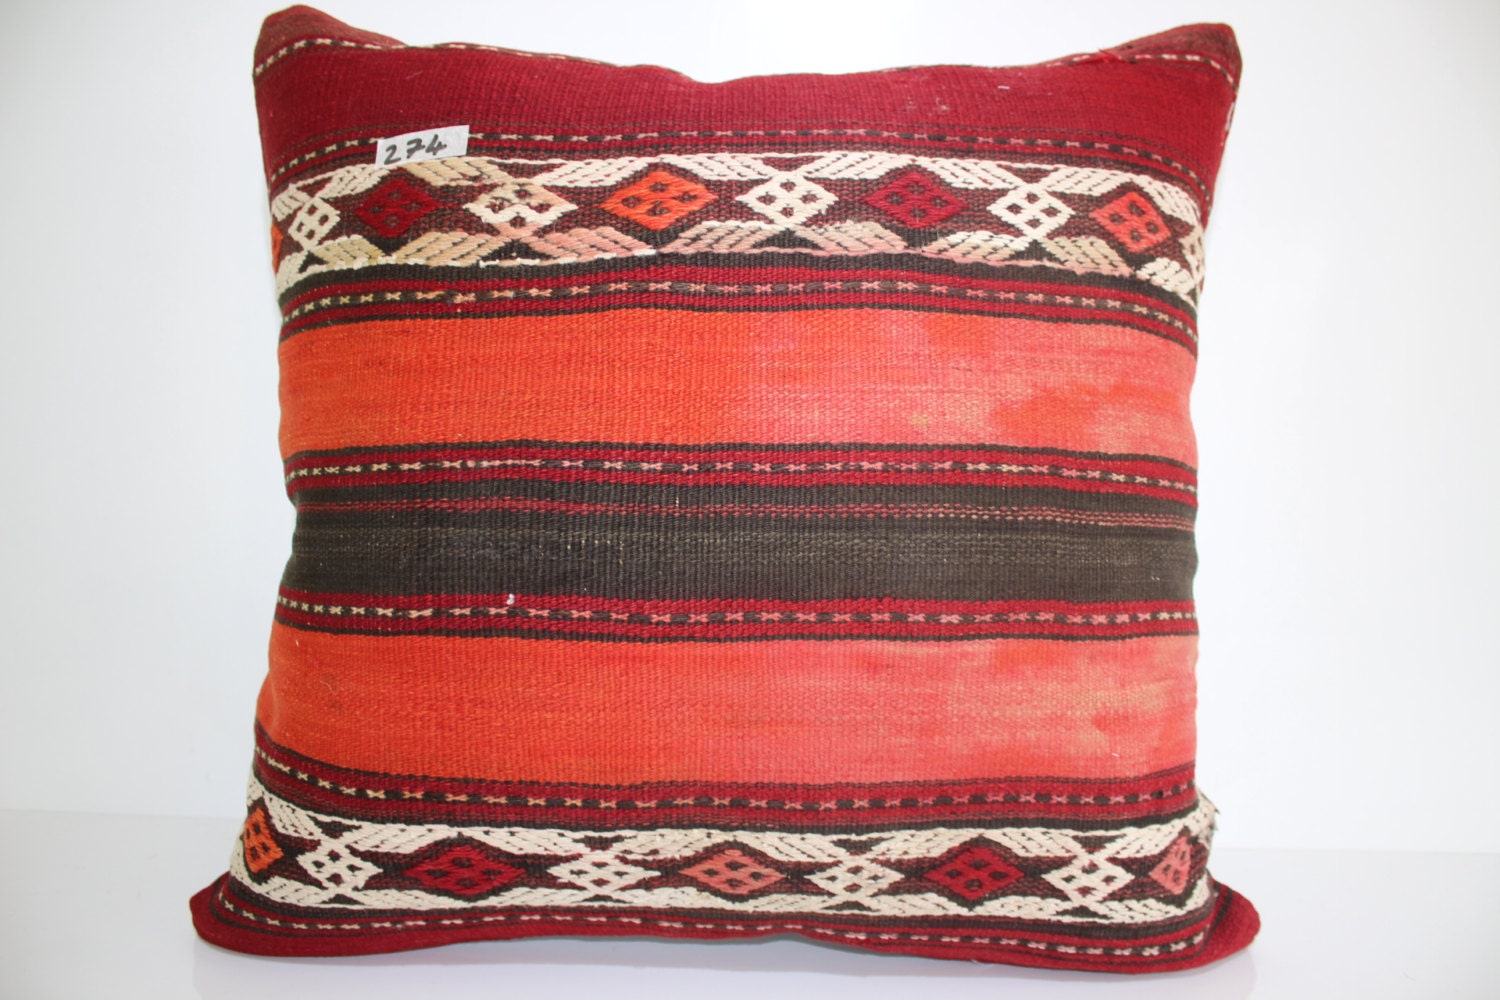 Kilim Pillow 24x24 Large Size Floor Cushion Cover 24x24